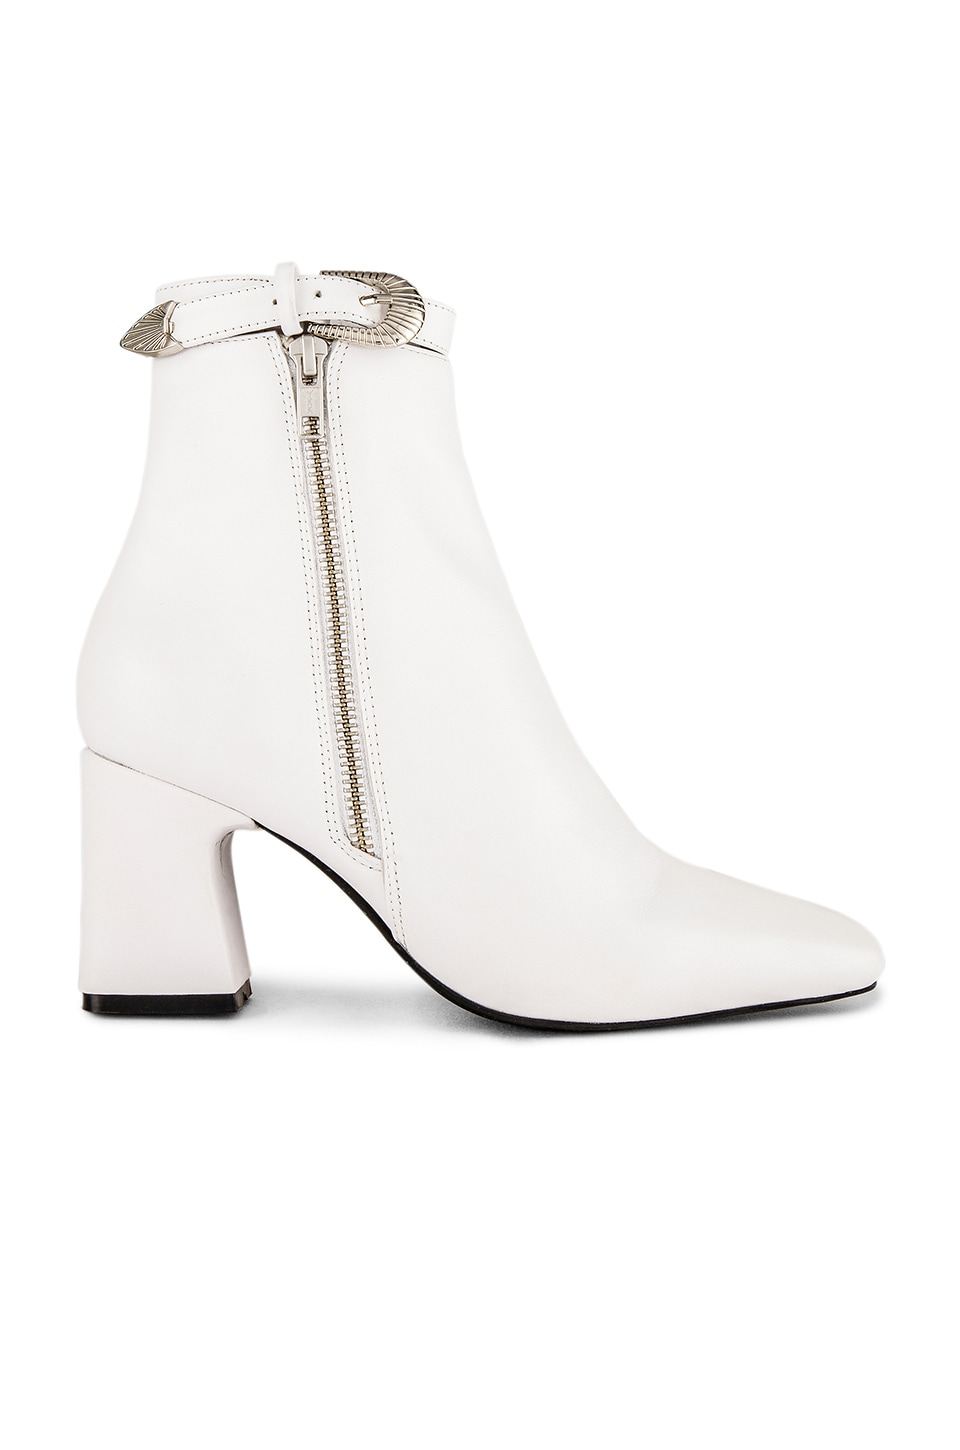 Caverley Dita Bootie in White